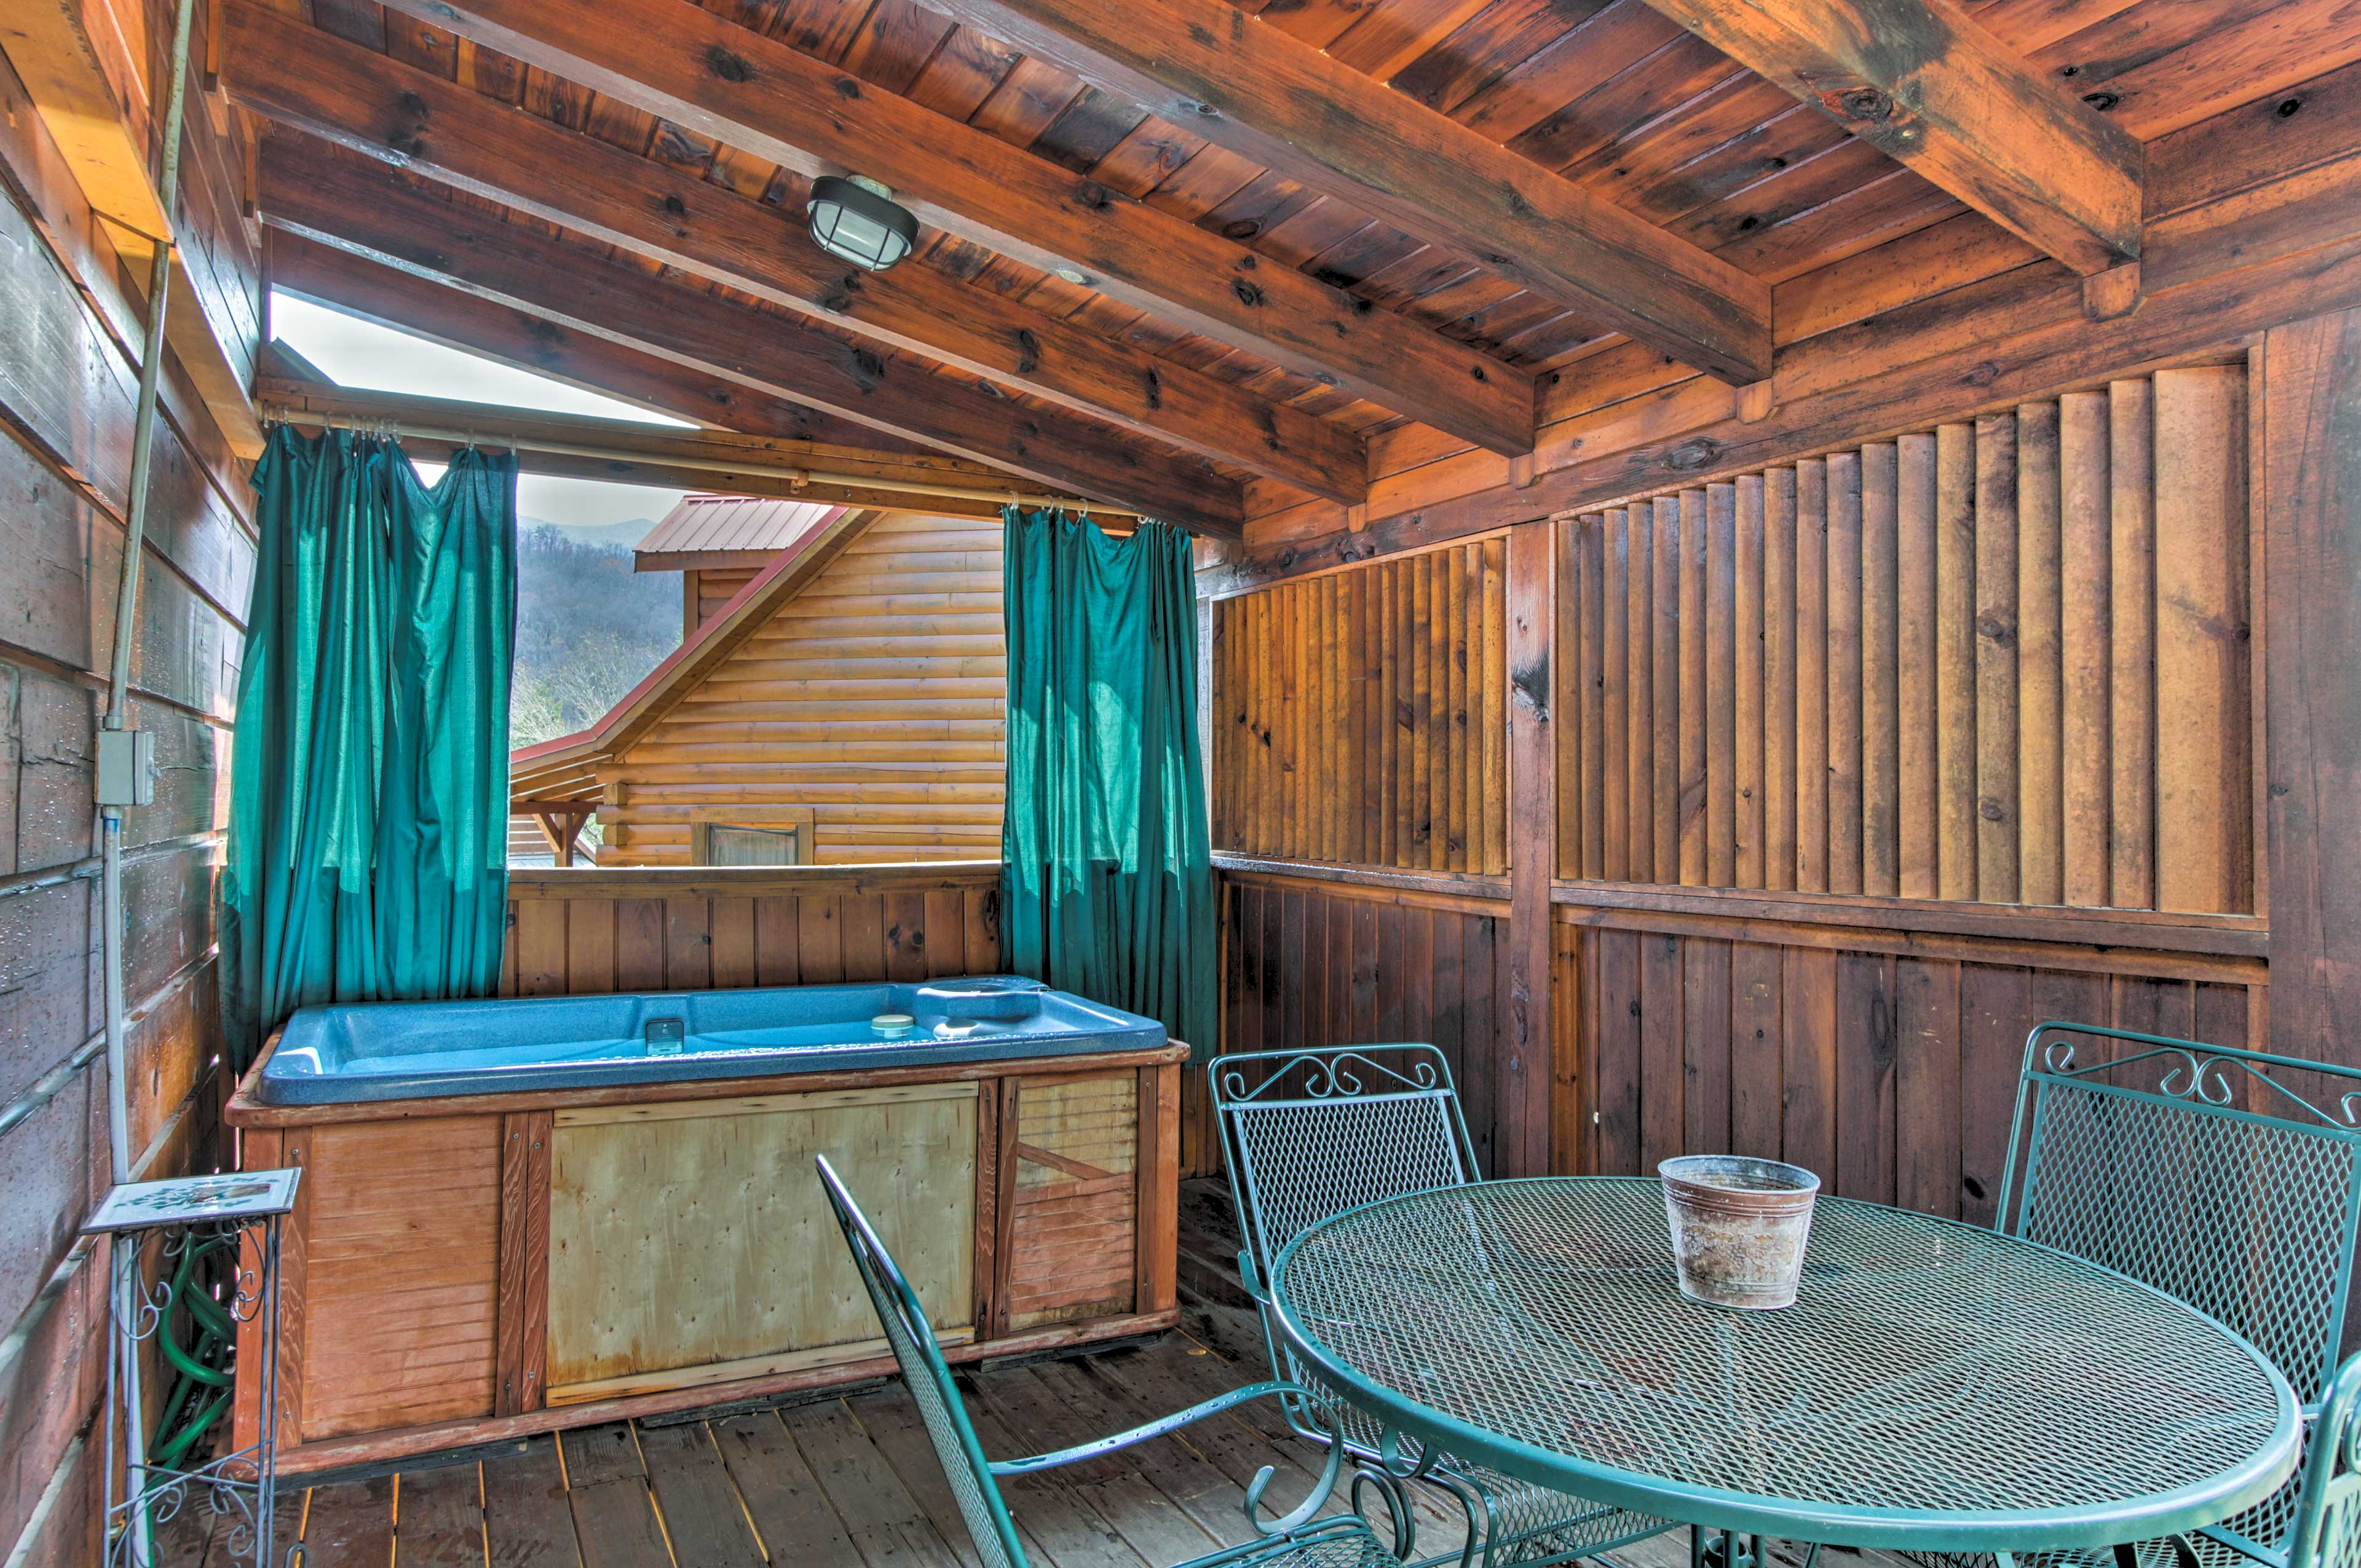 Climb into the hot tub after you finish breakfast.